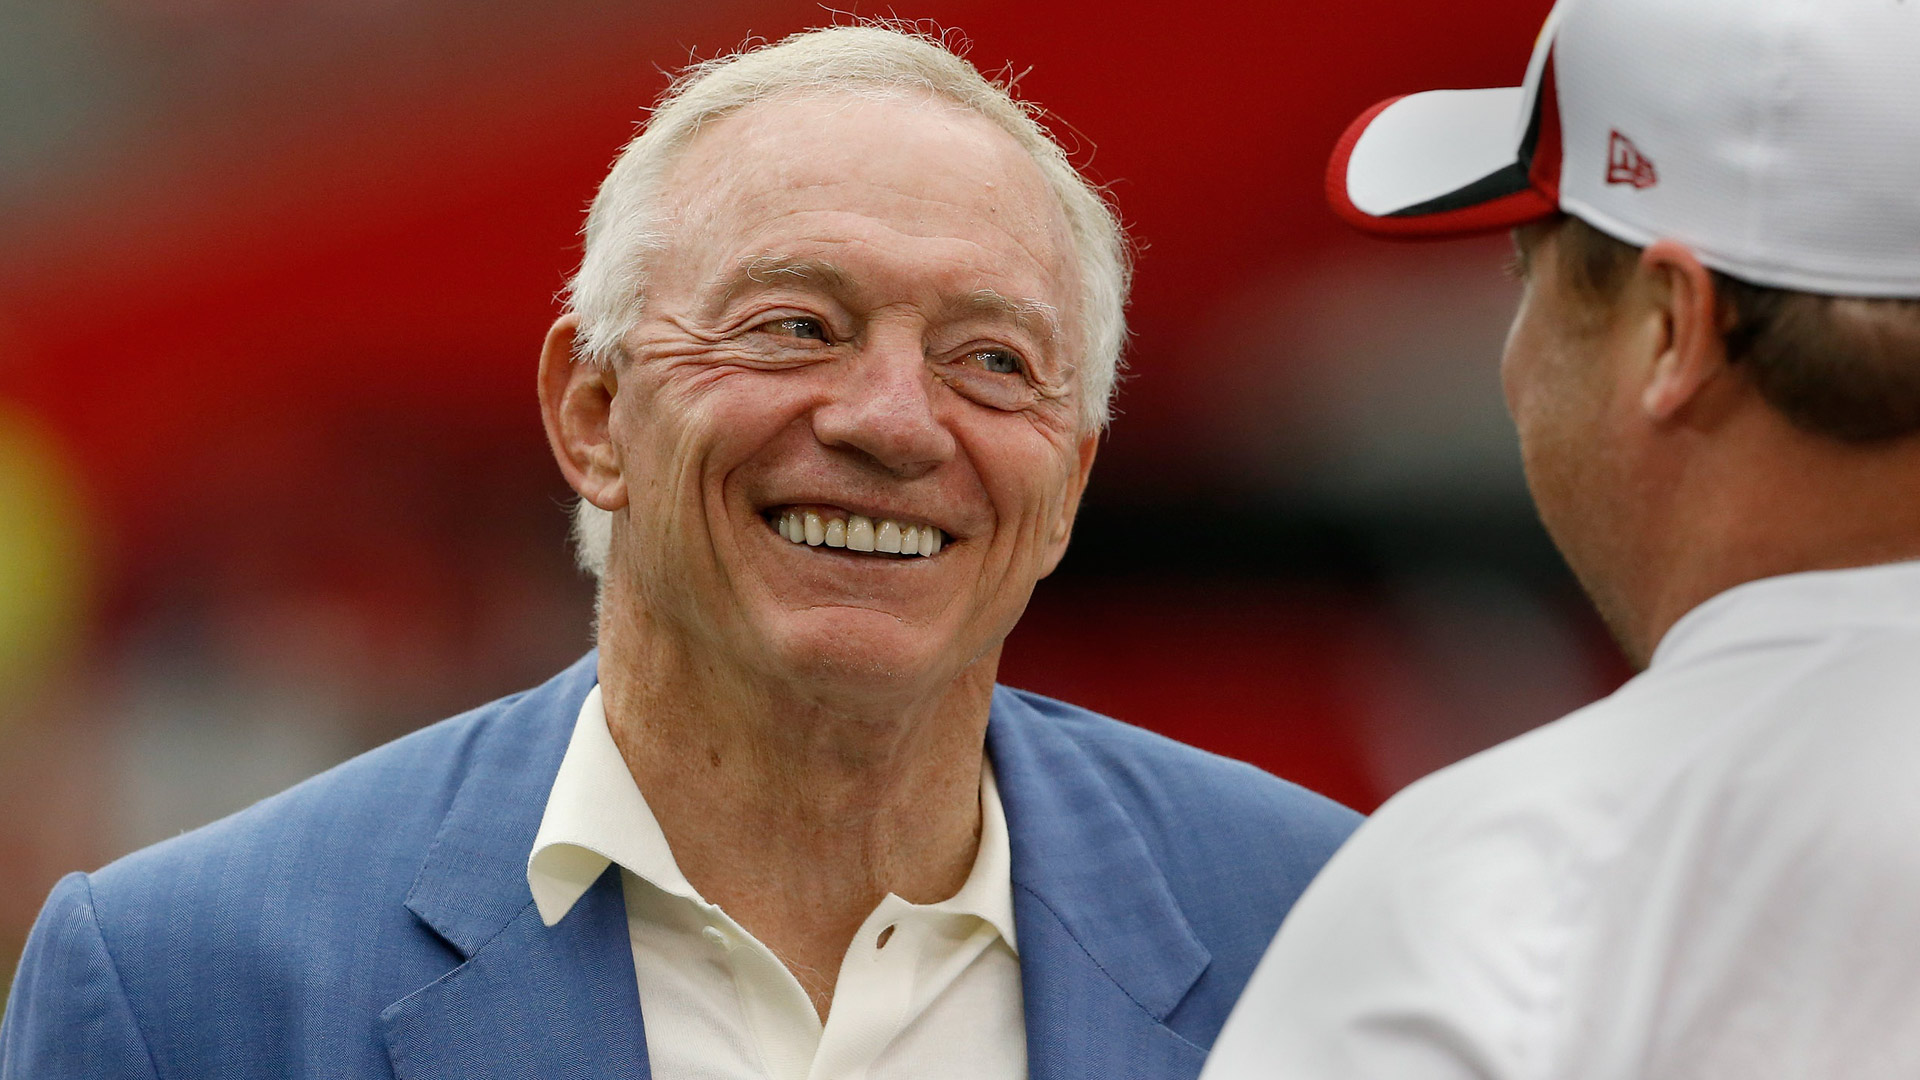 Jerry_Jones_FTR_121913_AP.jpg